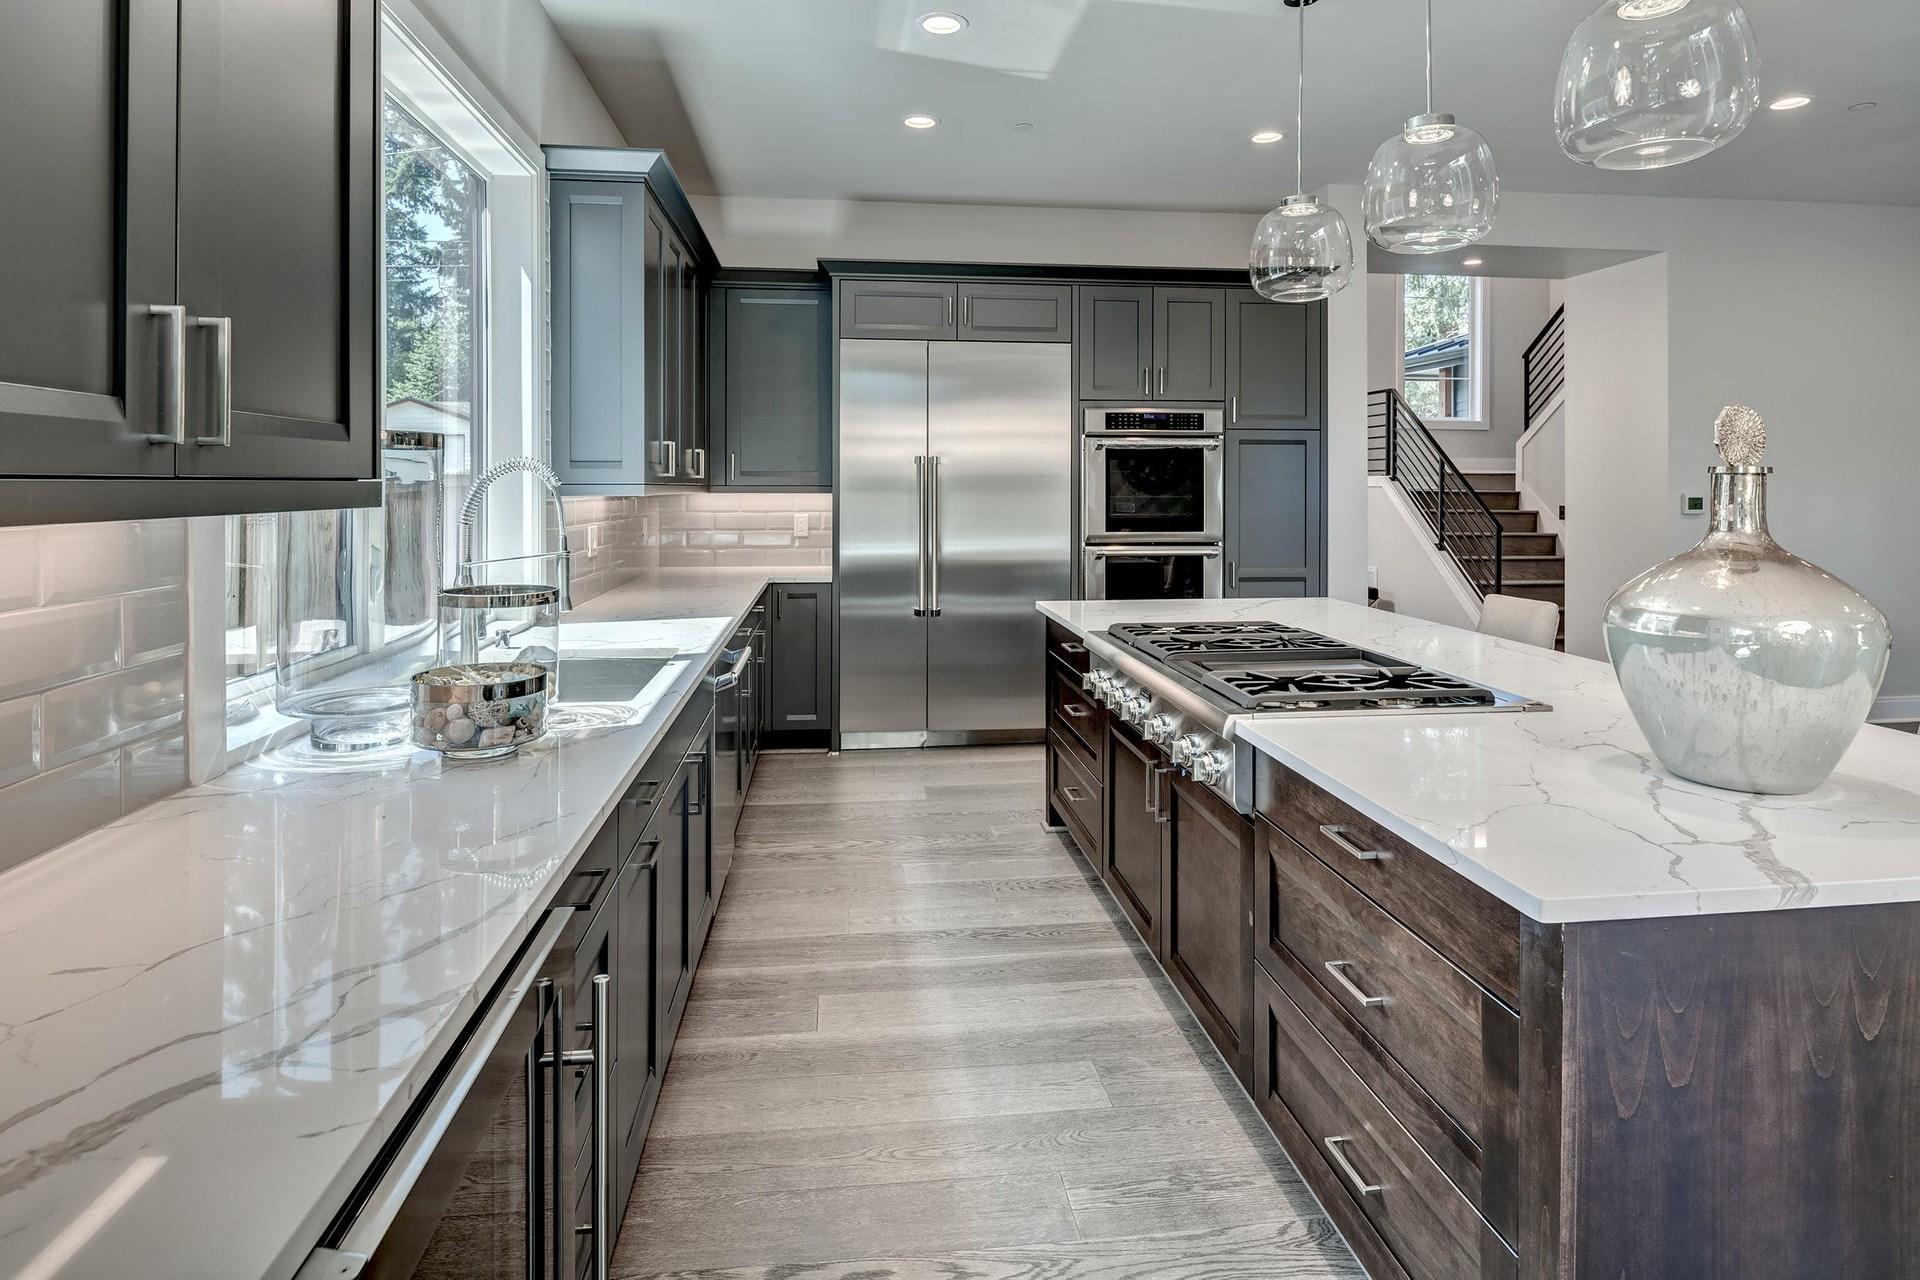 Plan a Successful Kitchen Remodel